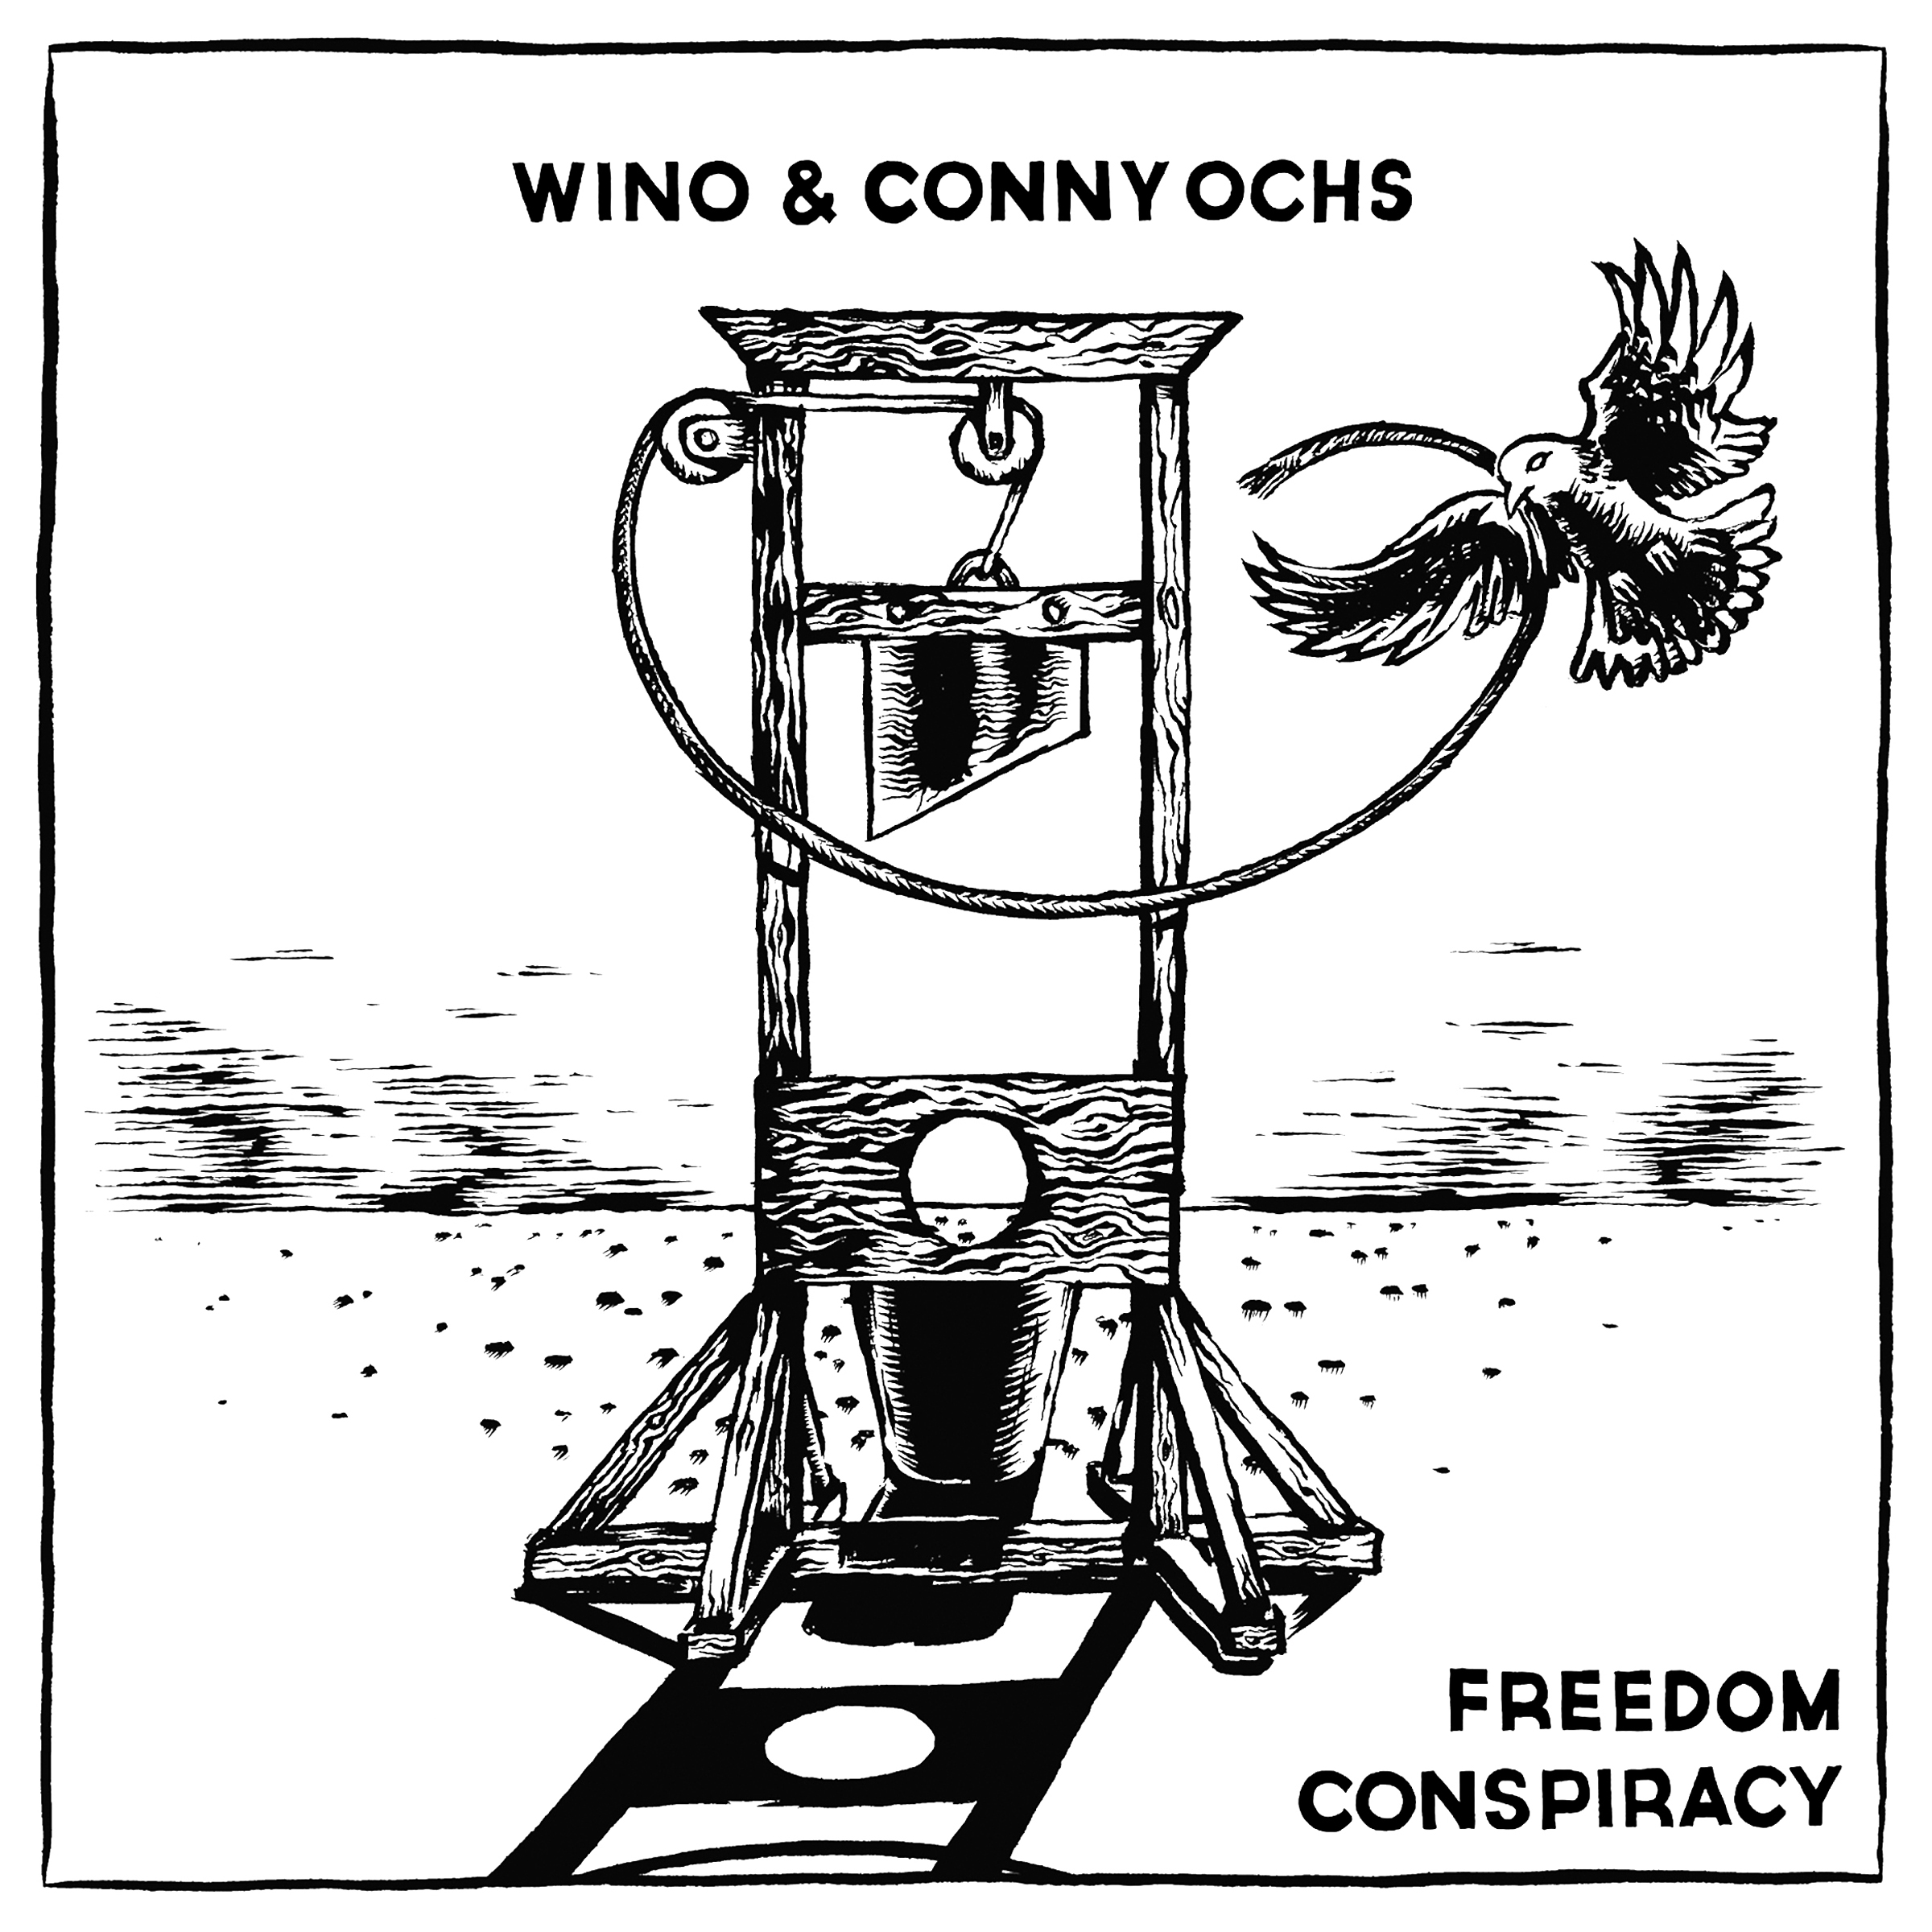 Wino and Conny Ochs – Freedom Conspiracy Review